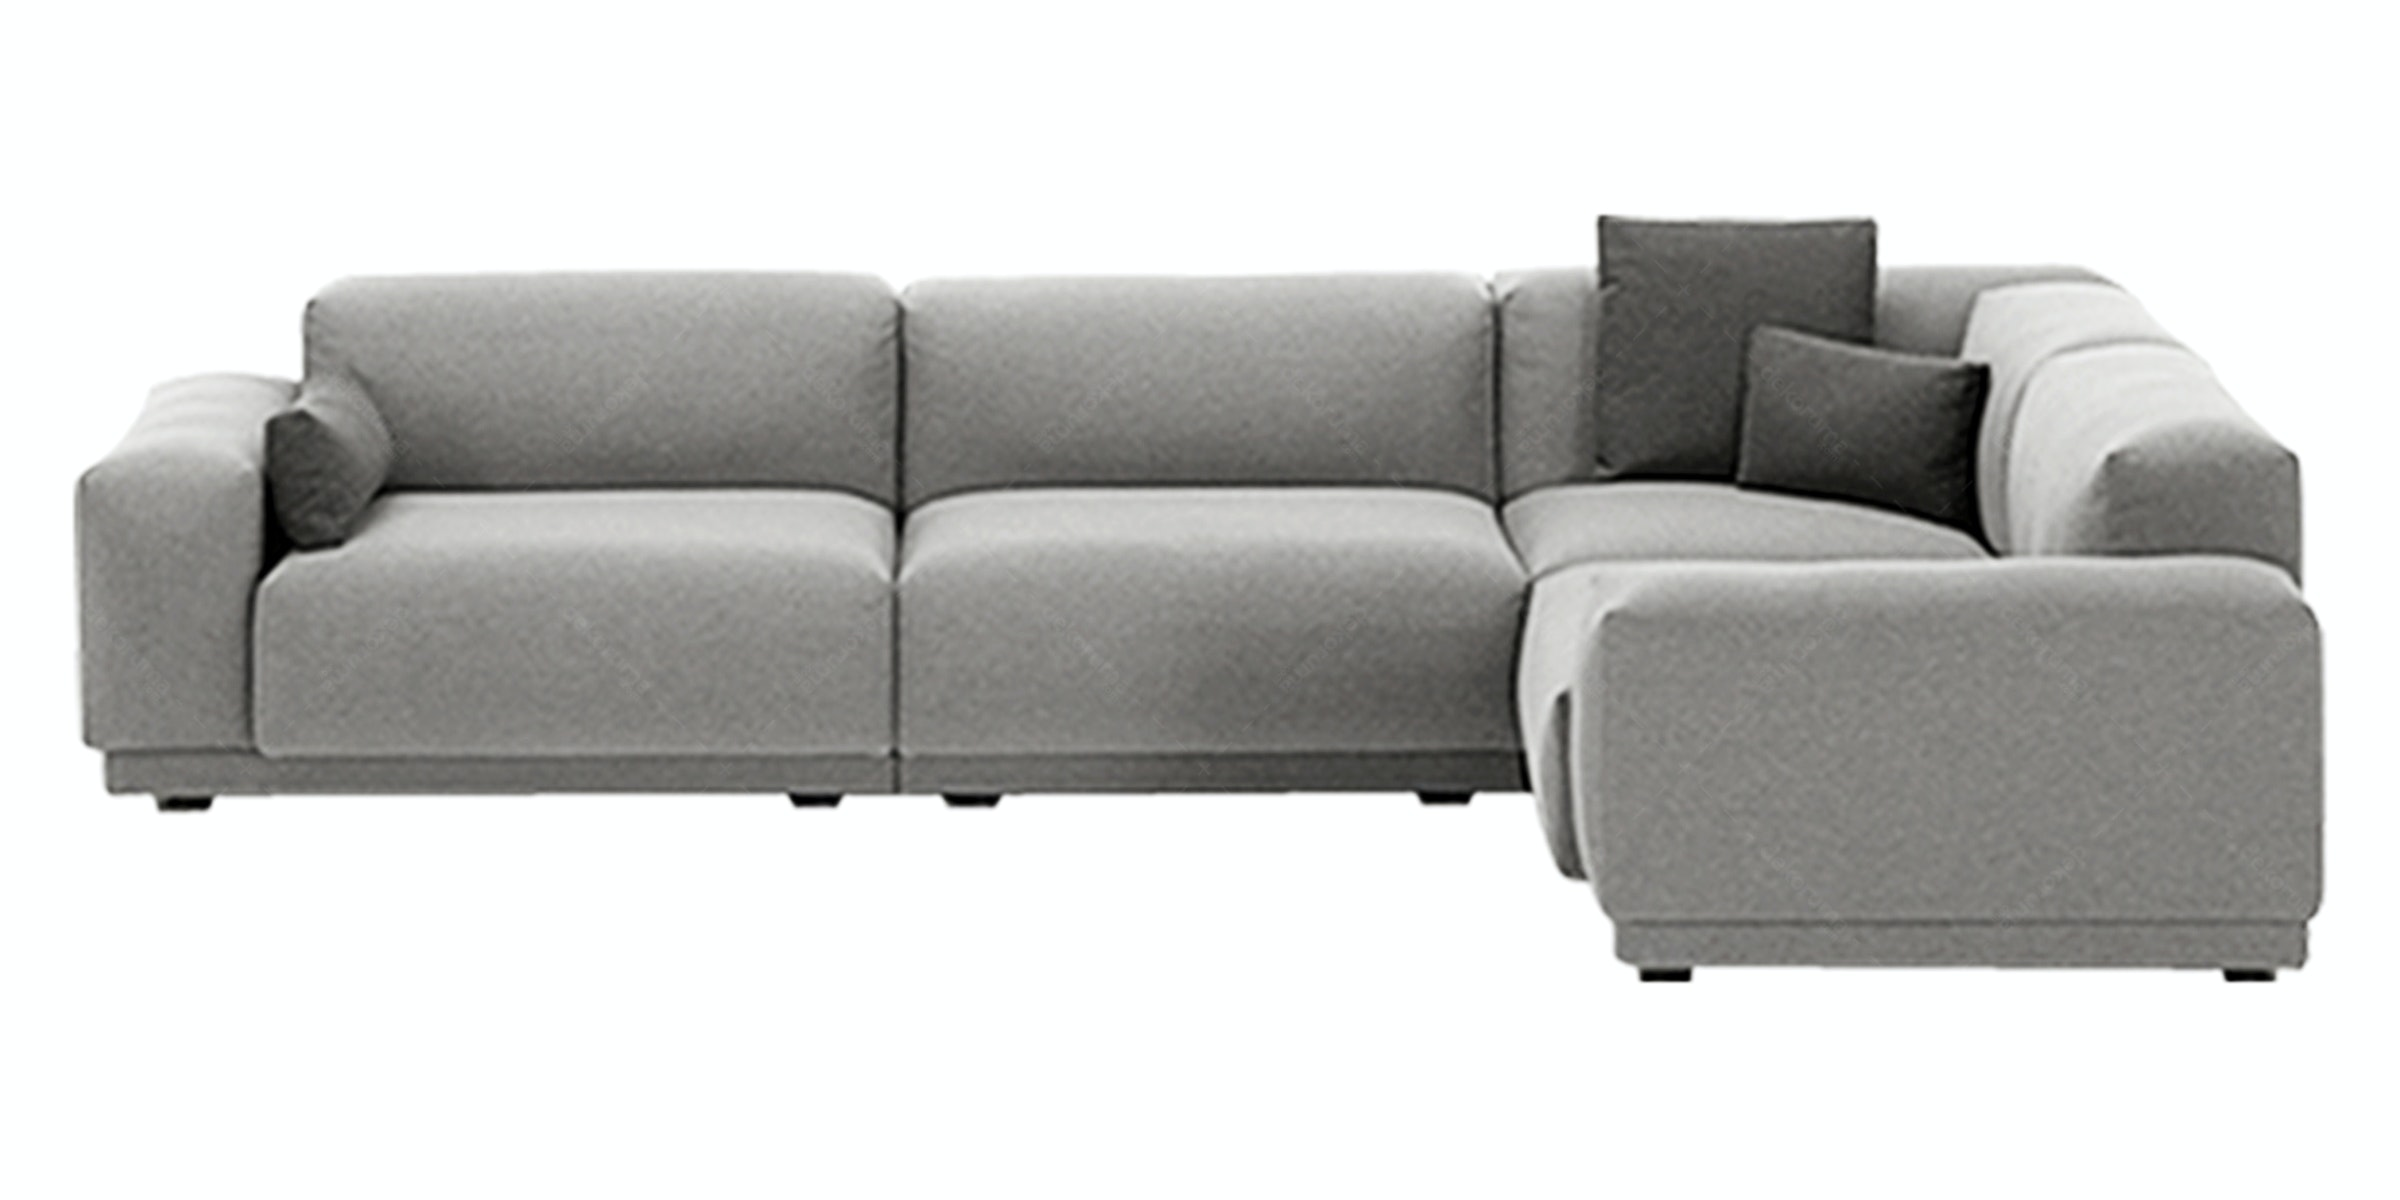 Ridente Stone Sofa Set Abu